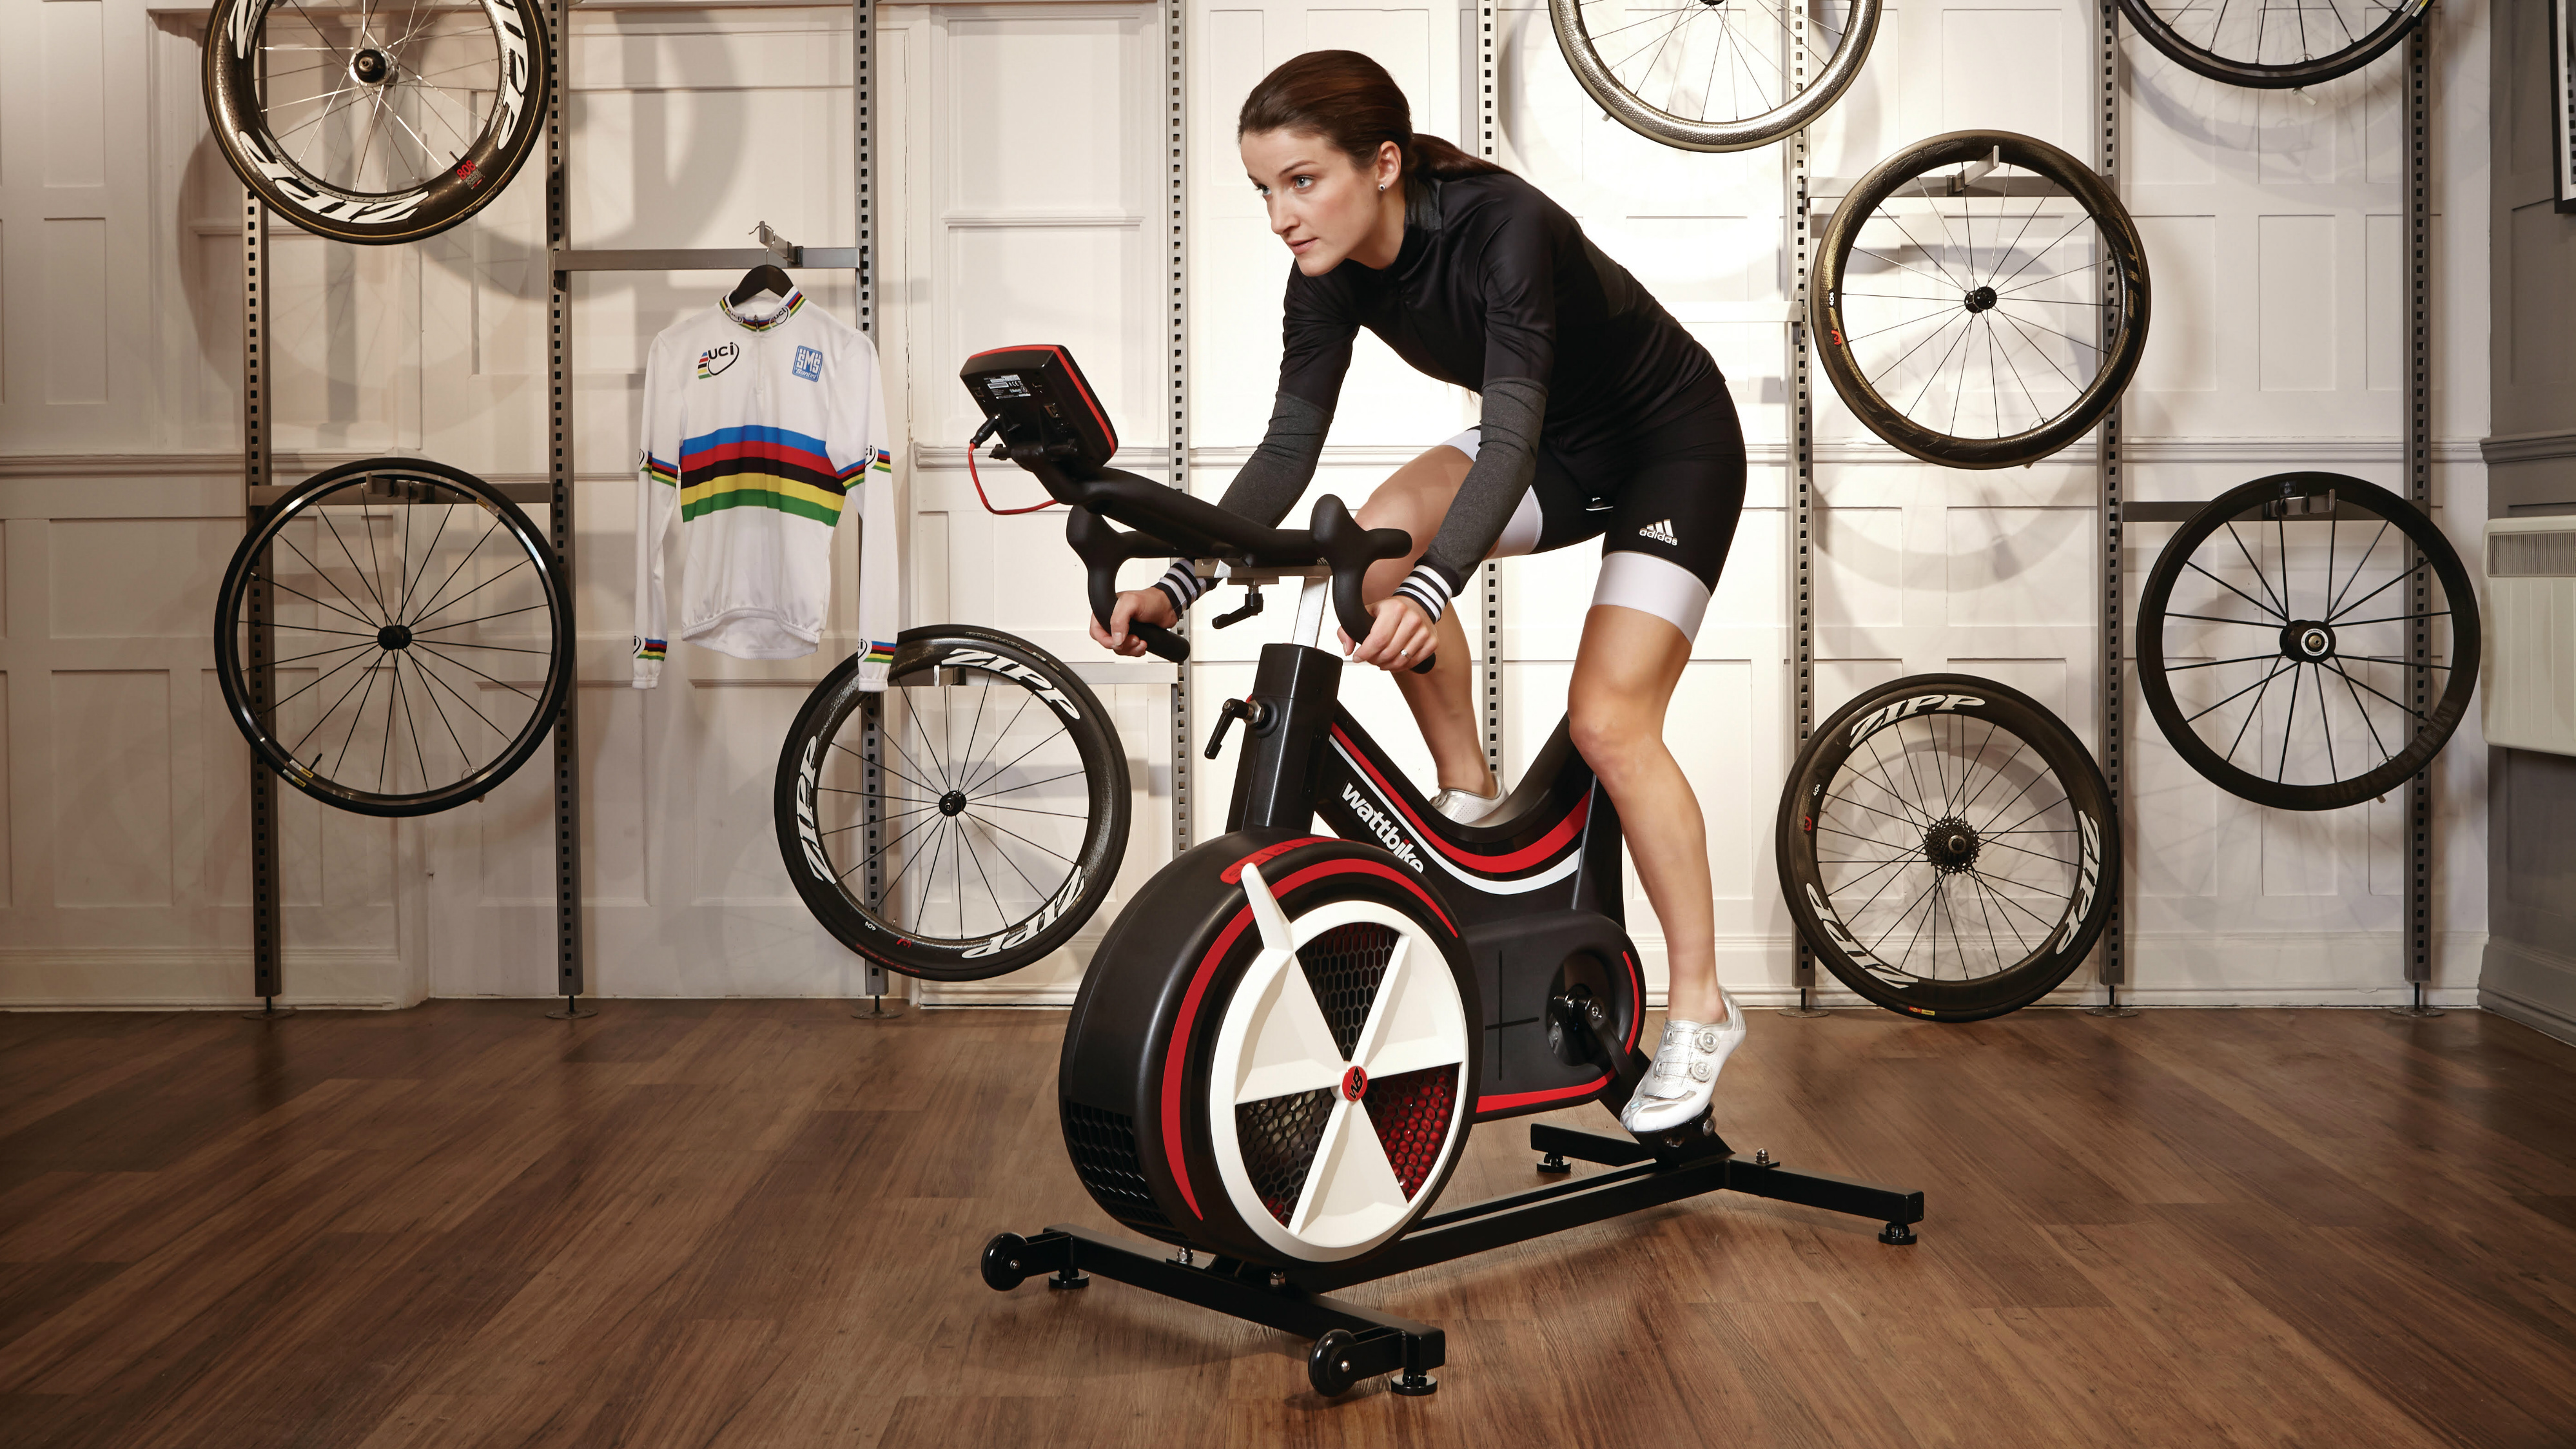 7 best exercise bikes 2019 for home cardio workouts with less knee